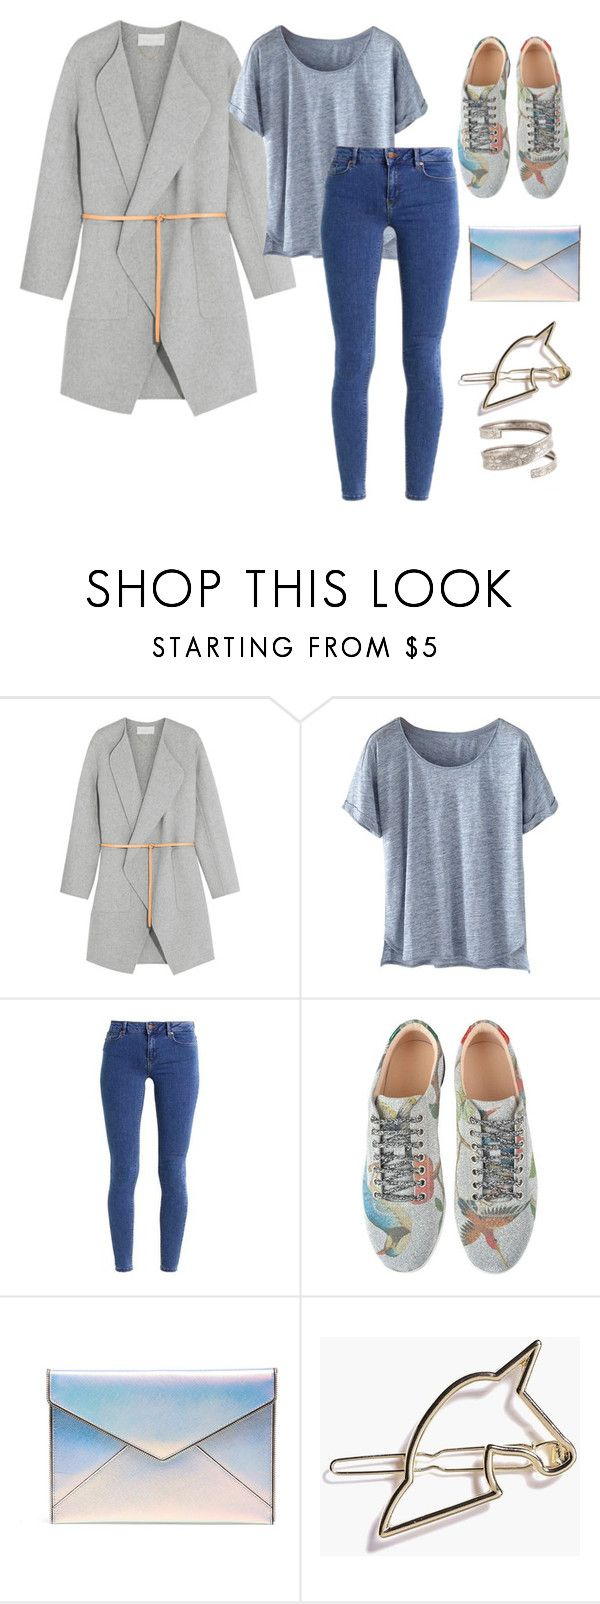 """""""⚙️🗝🛒"""" by aracely-martinez ❤ liked on Polyvore featuring Vanessa Bruno, Wrap, even&odd, Gucci, Rebecca Minkoff and Boohoo"""